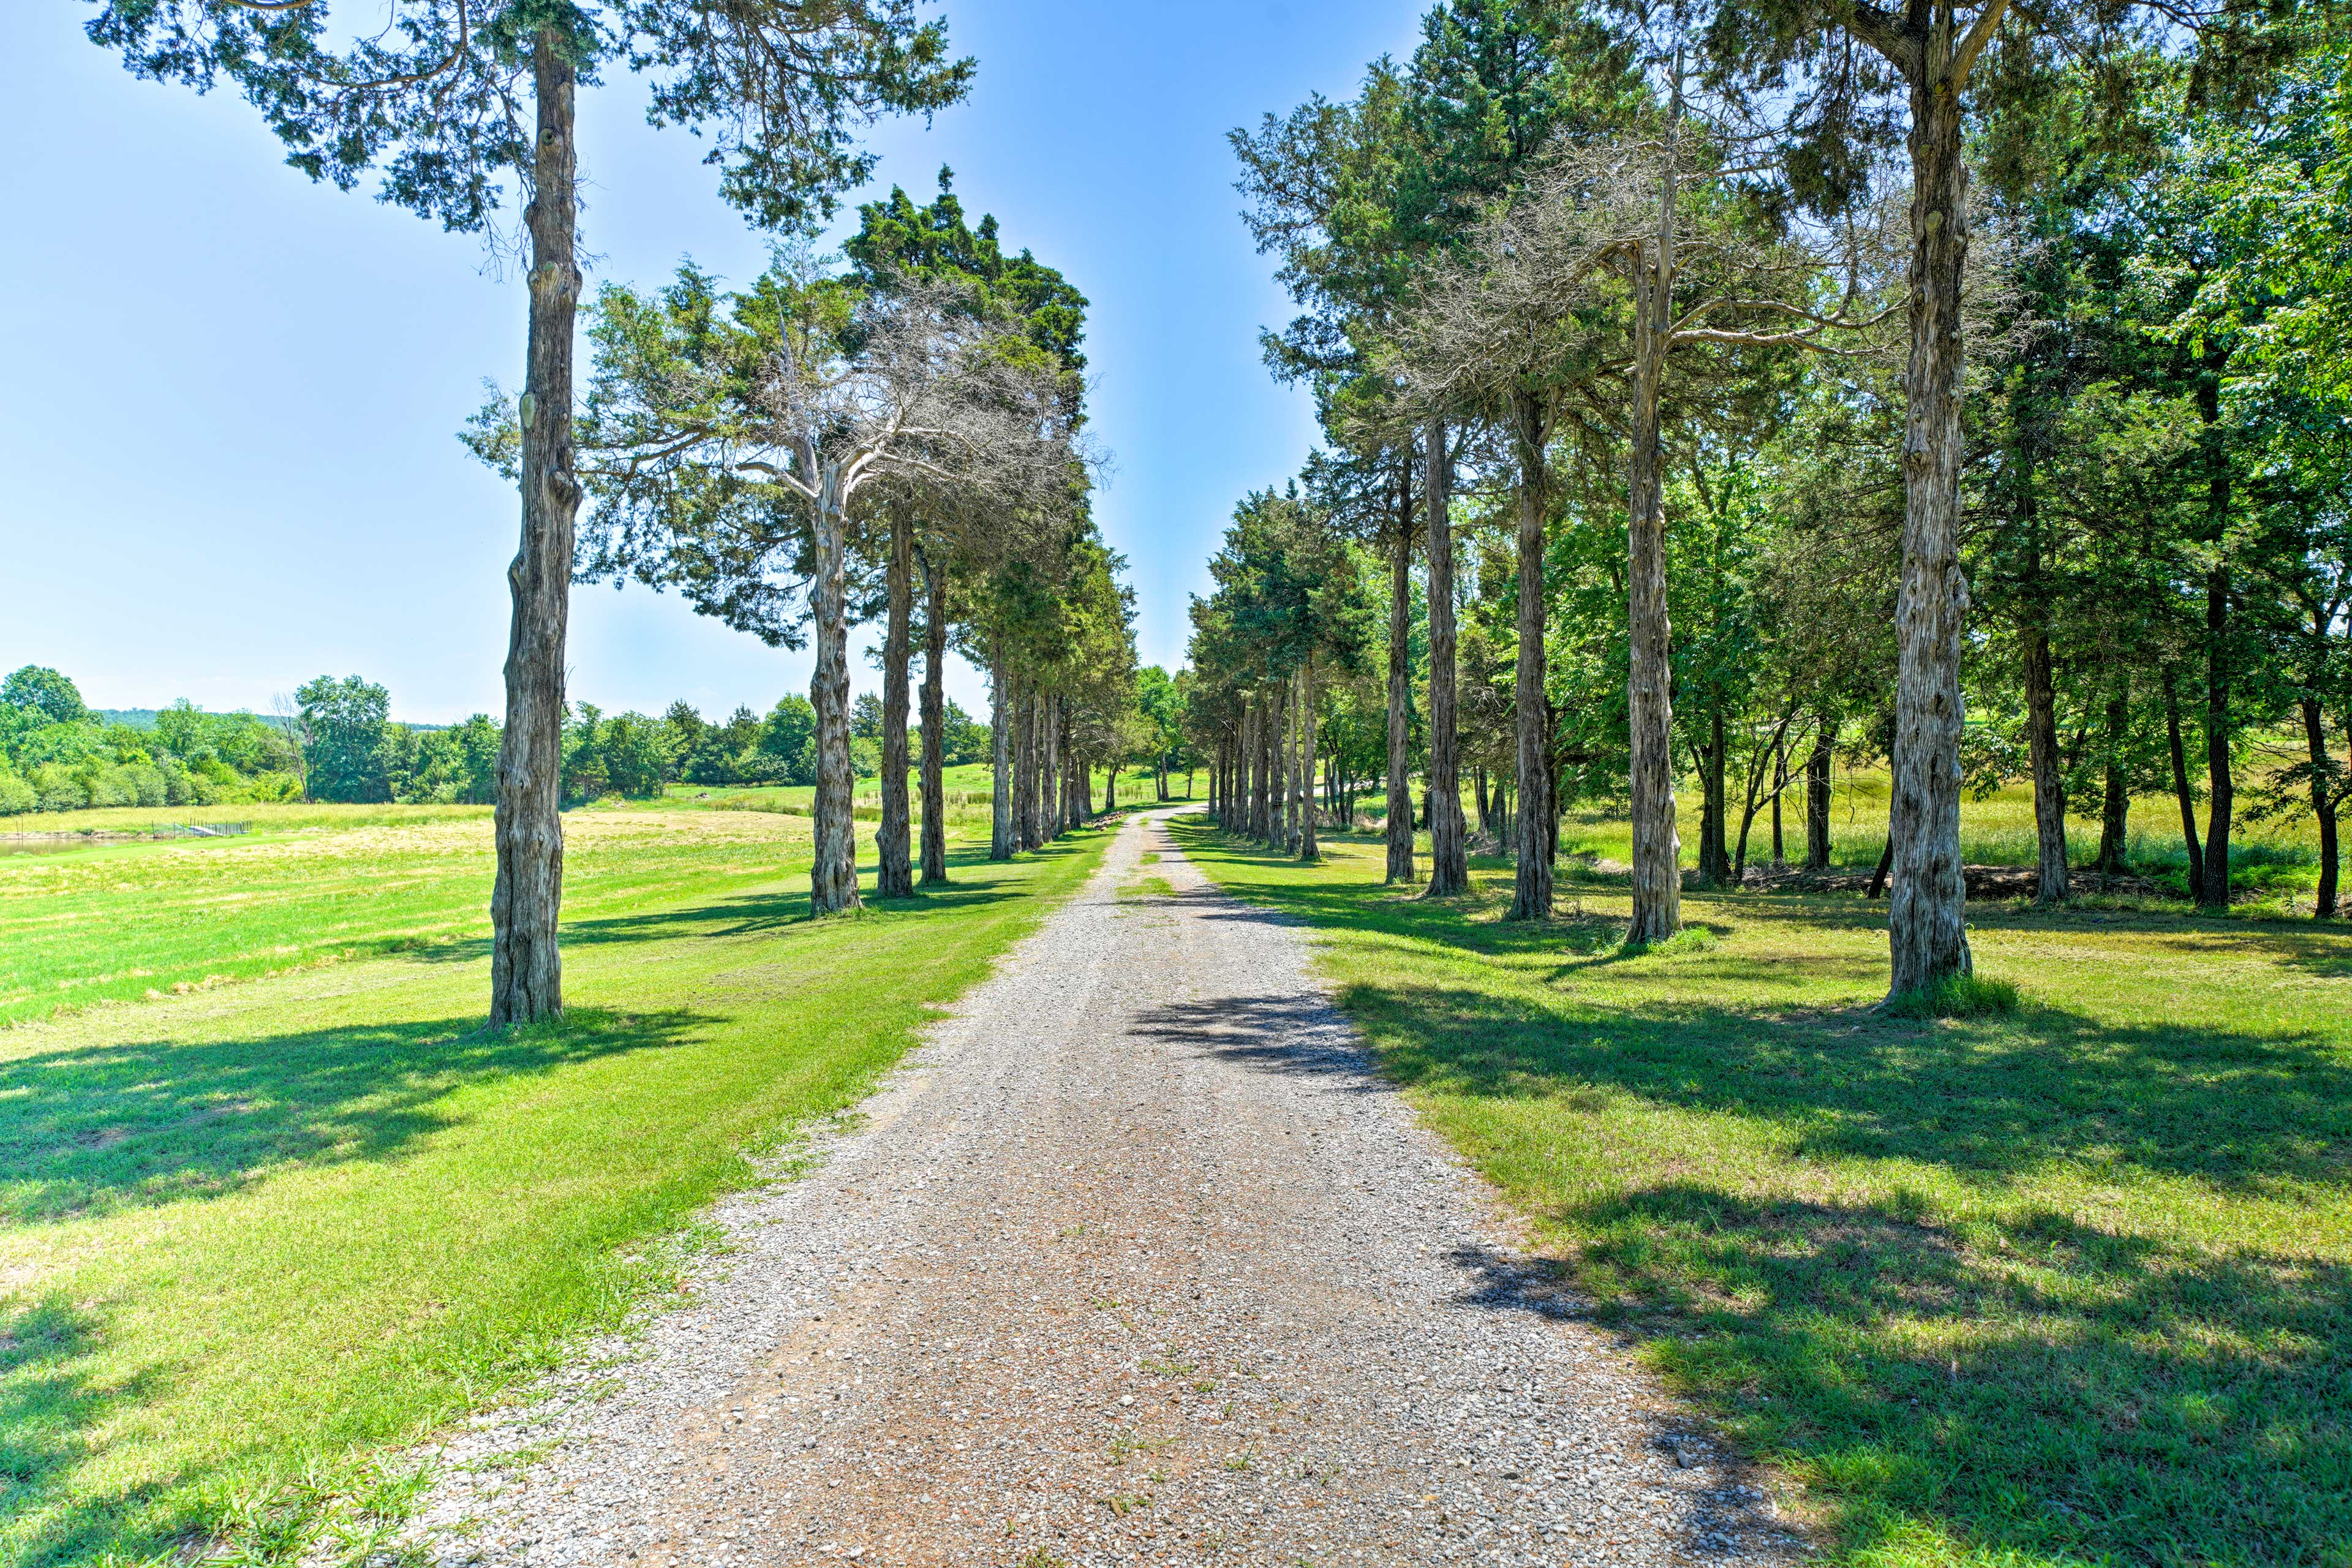 Cedar trees line the drive and welcome you to your vacation cottage.